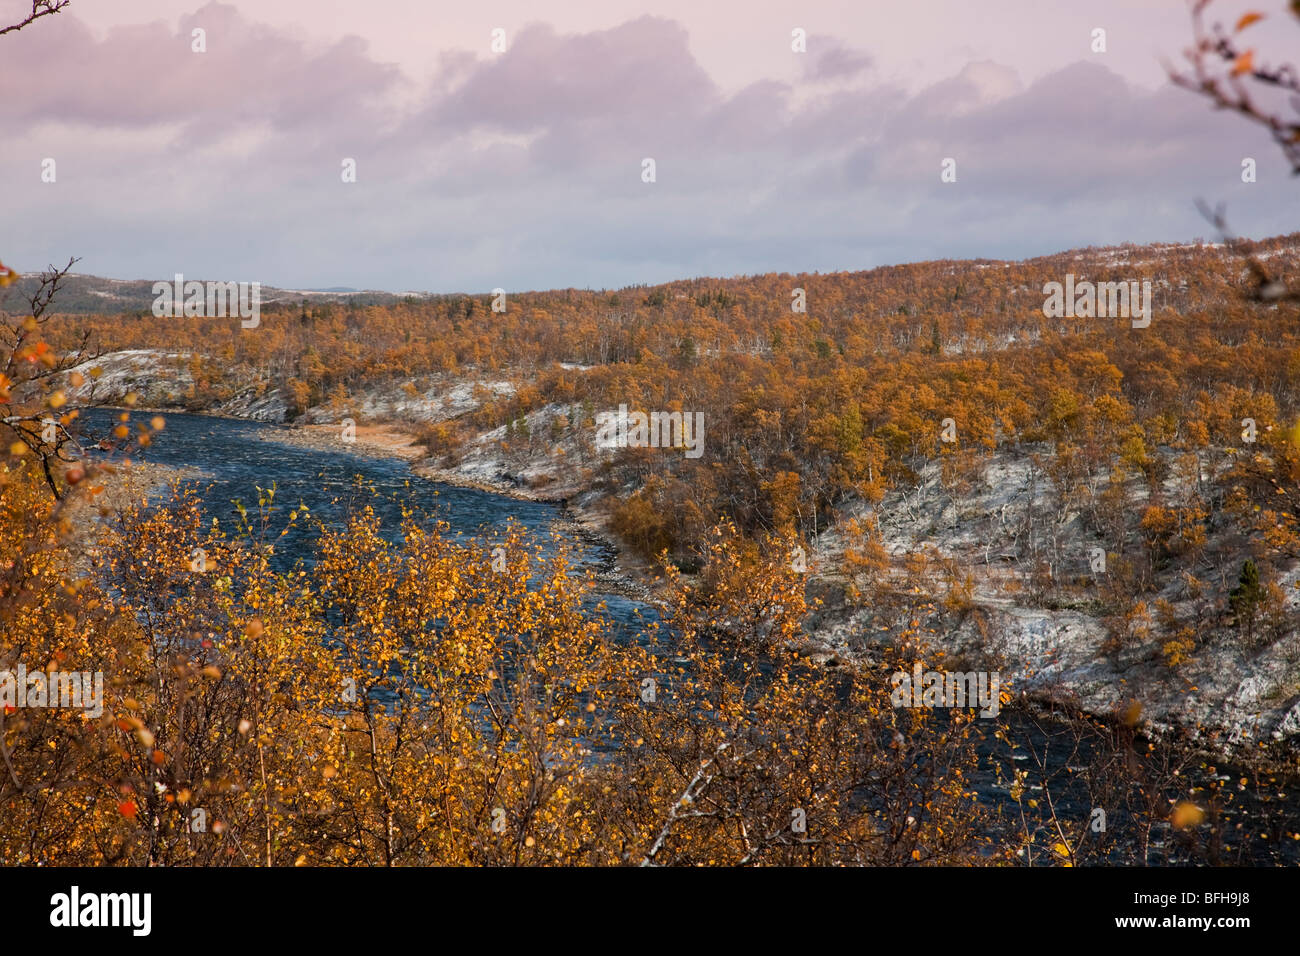 Sweden Jämtland Storulvån fjell seasons autumn fall winter snow first snow birch forest winter snow river - Stock Image